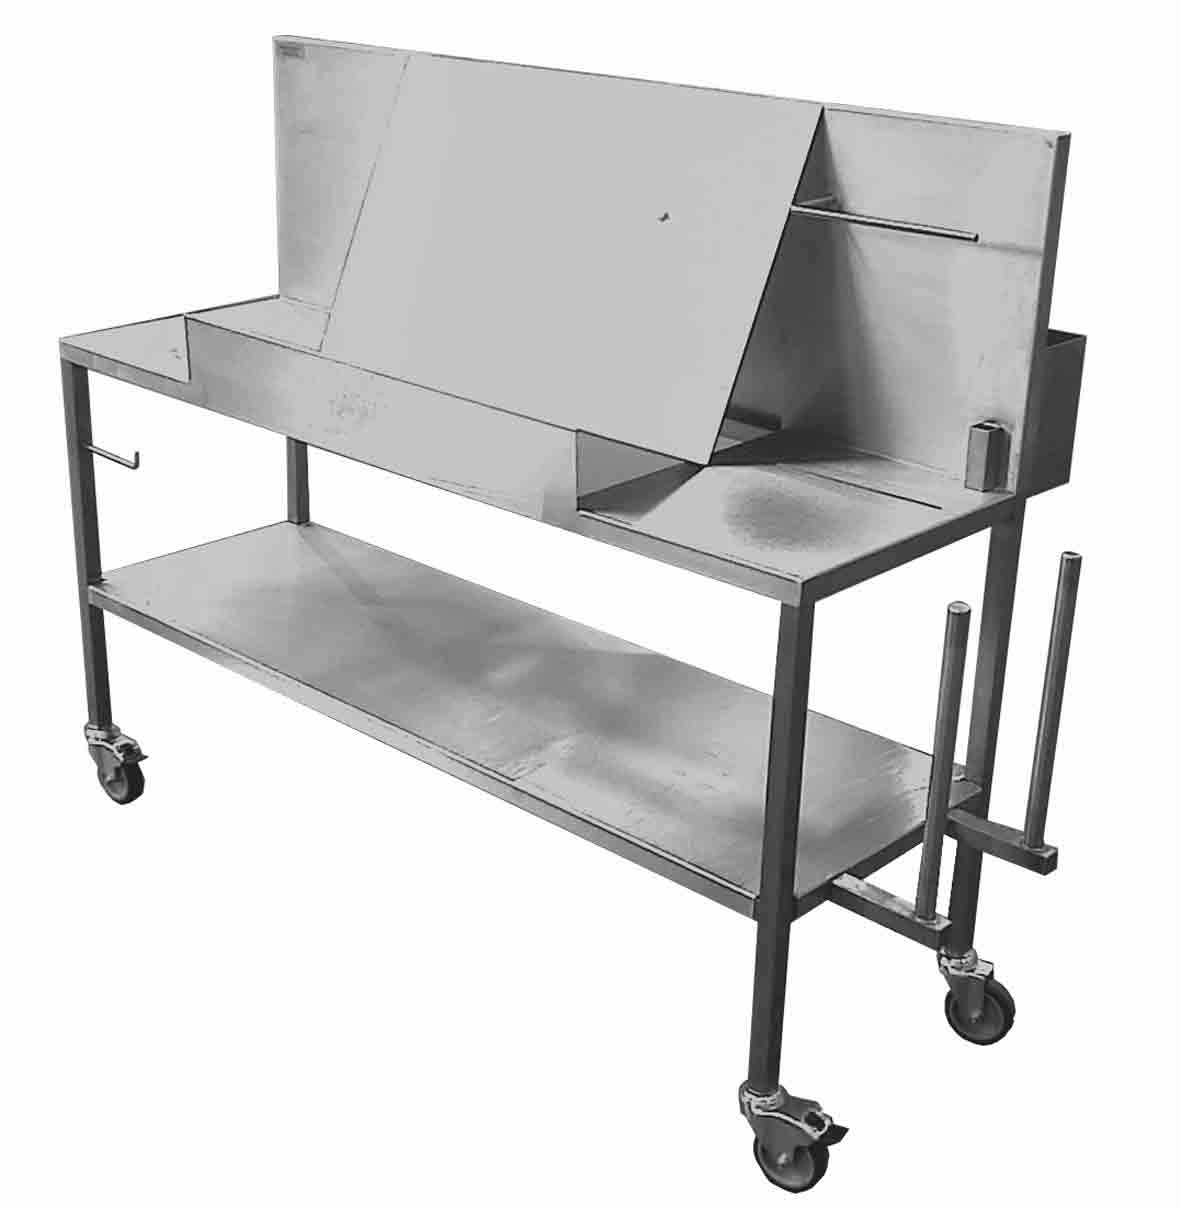 Stainless Steel and Aluminium Furniture